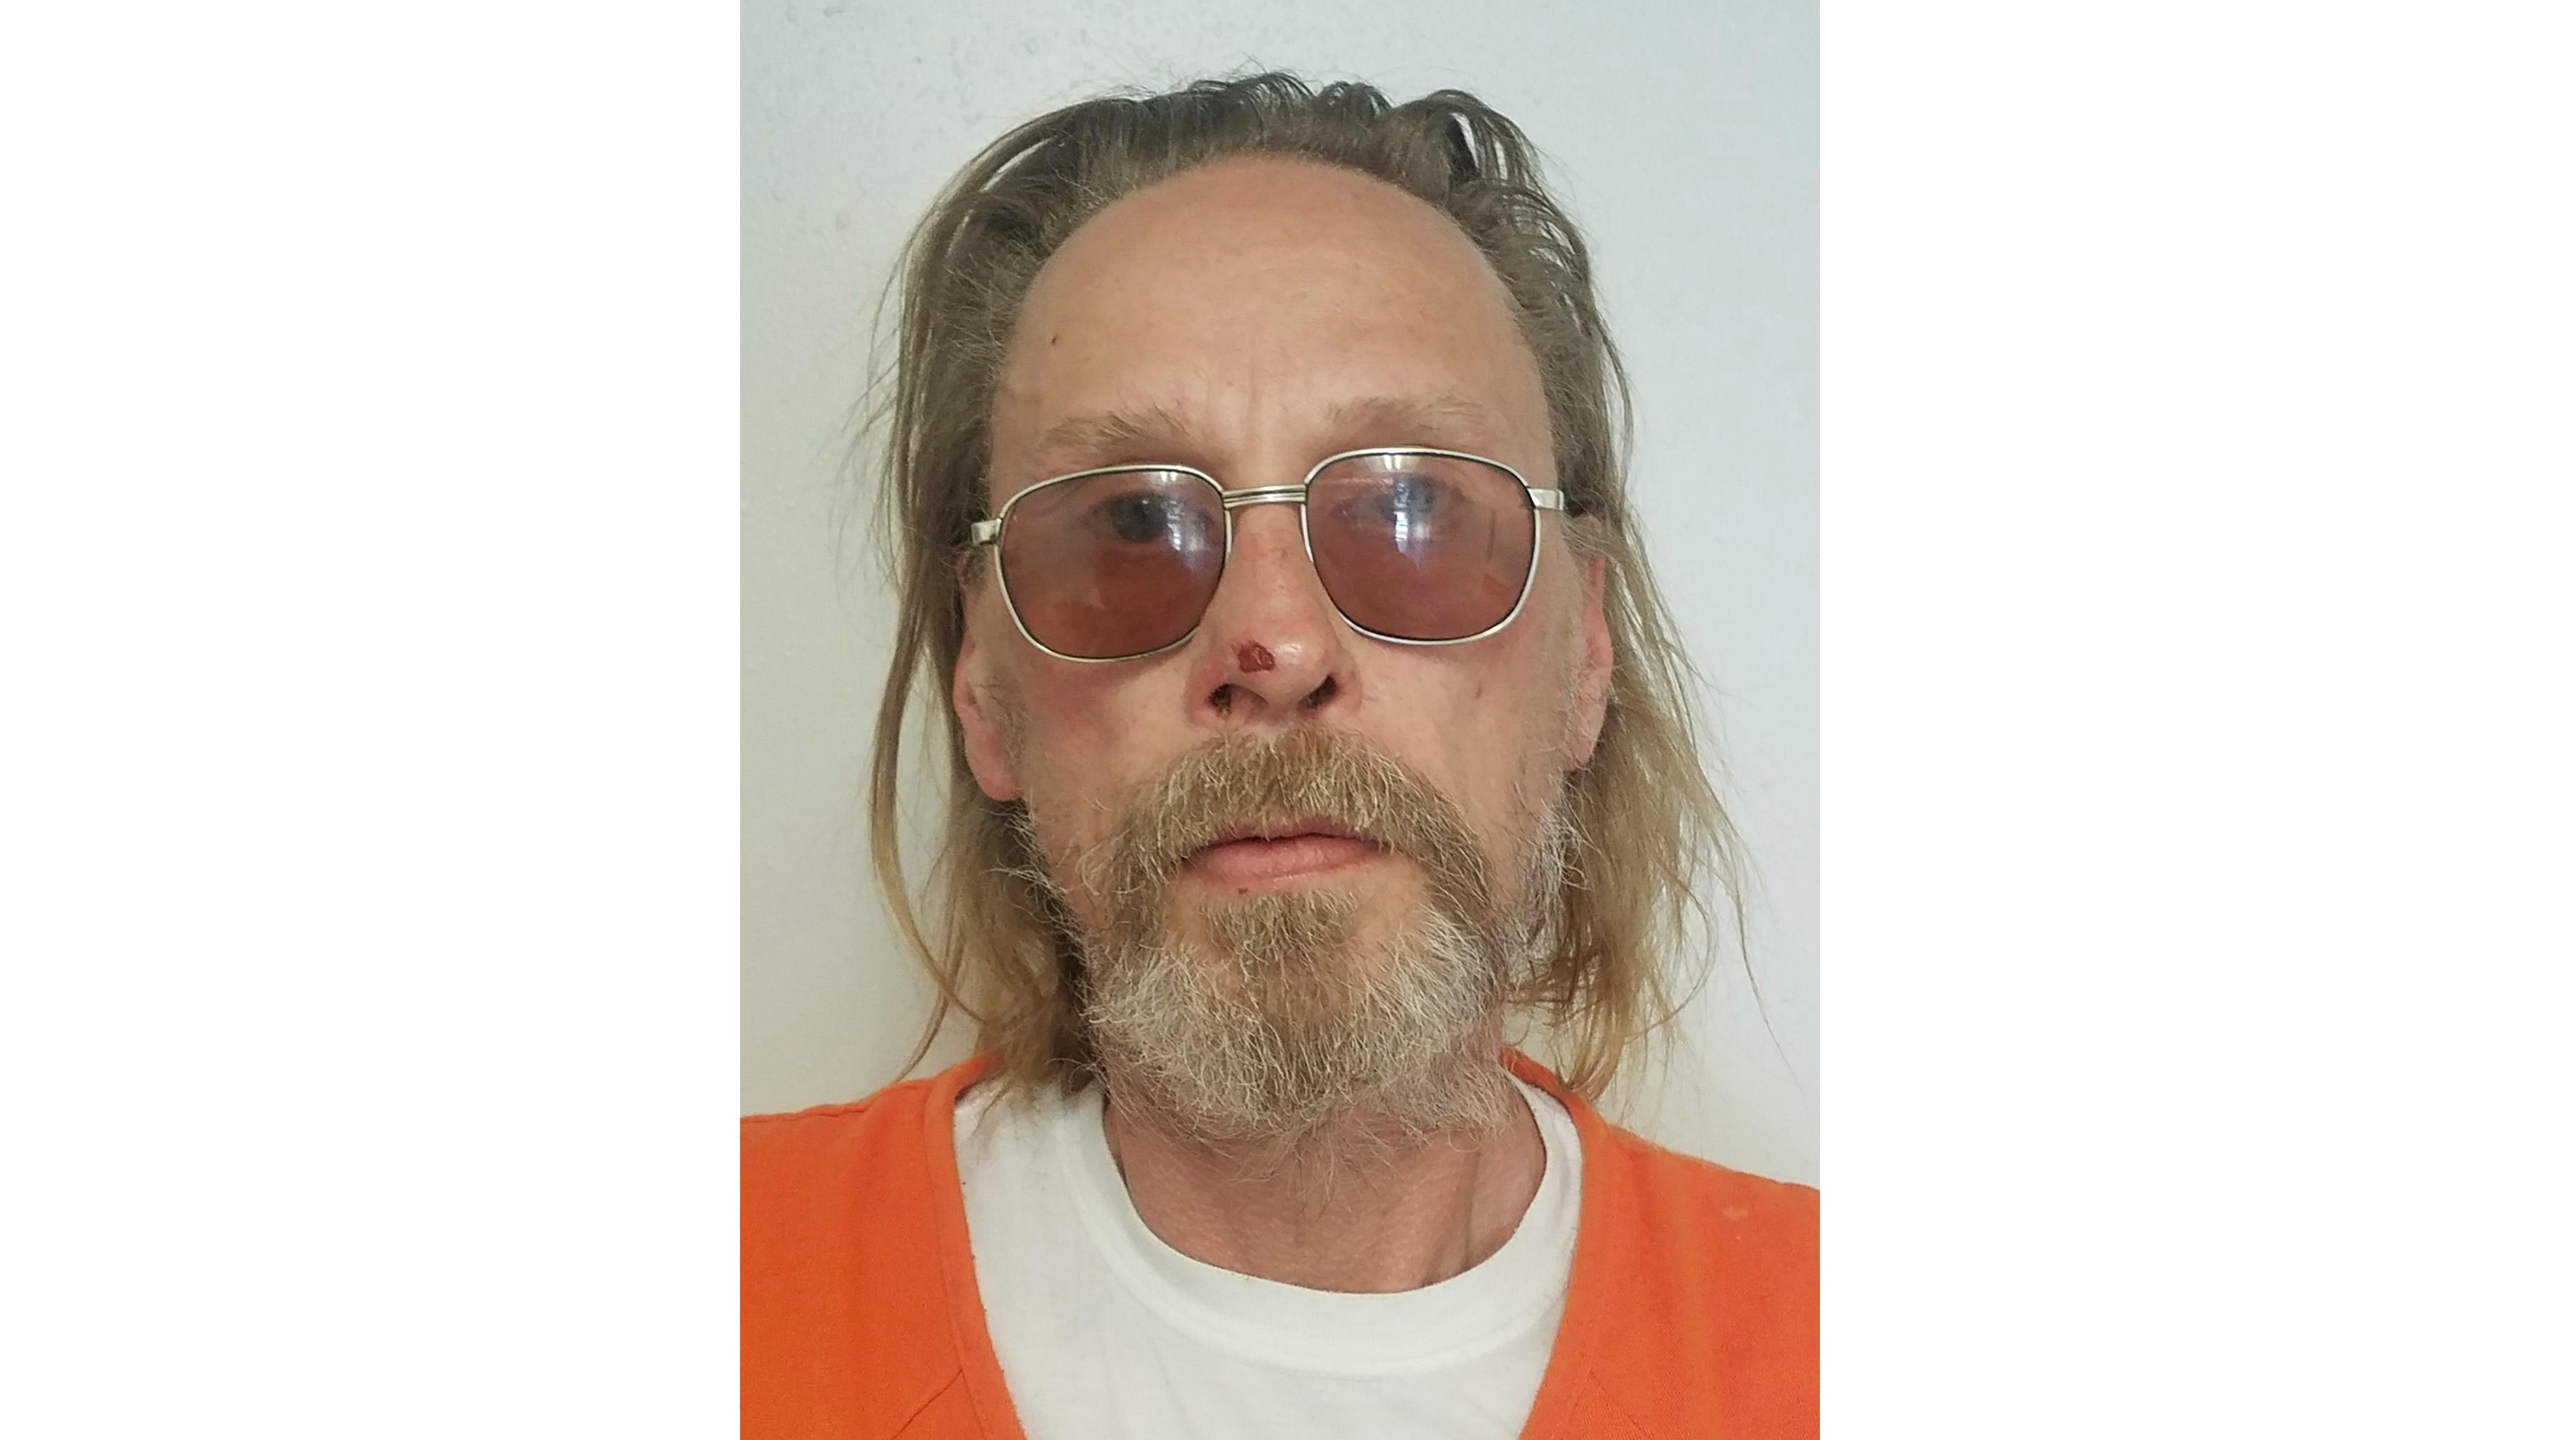 FILE - This undated file photo released by the Costilla County, Colo., Sheriff's Office shows Jesper Joergensen. With no viable option remaining for trying Joergensen, a mentally ill Danish man accused of starting a large Colorado wildfire in 2018, a judge said Thursday, Feb. 4, 2021, he will rule next week on whether to dismiss criminal charges against him. (Costilla County Sheriff's Office via AP, file)